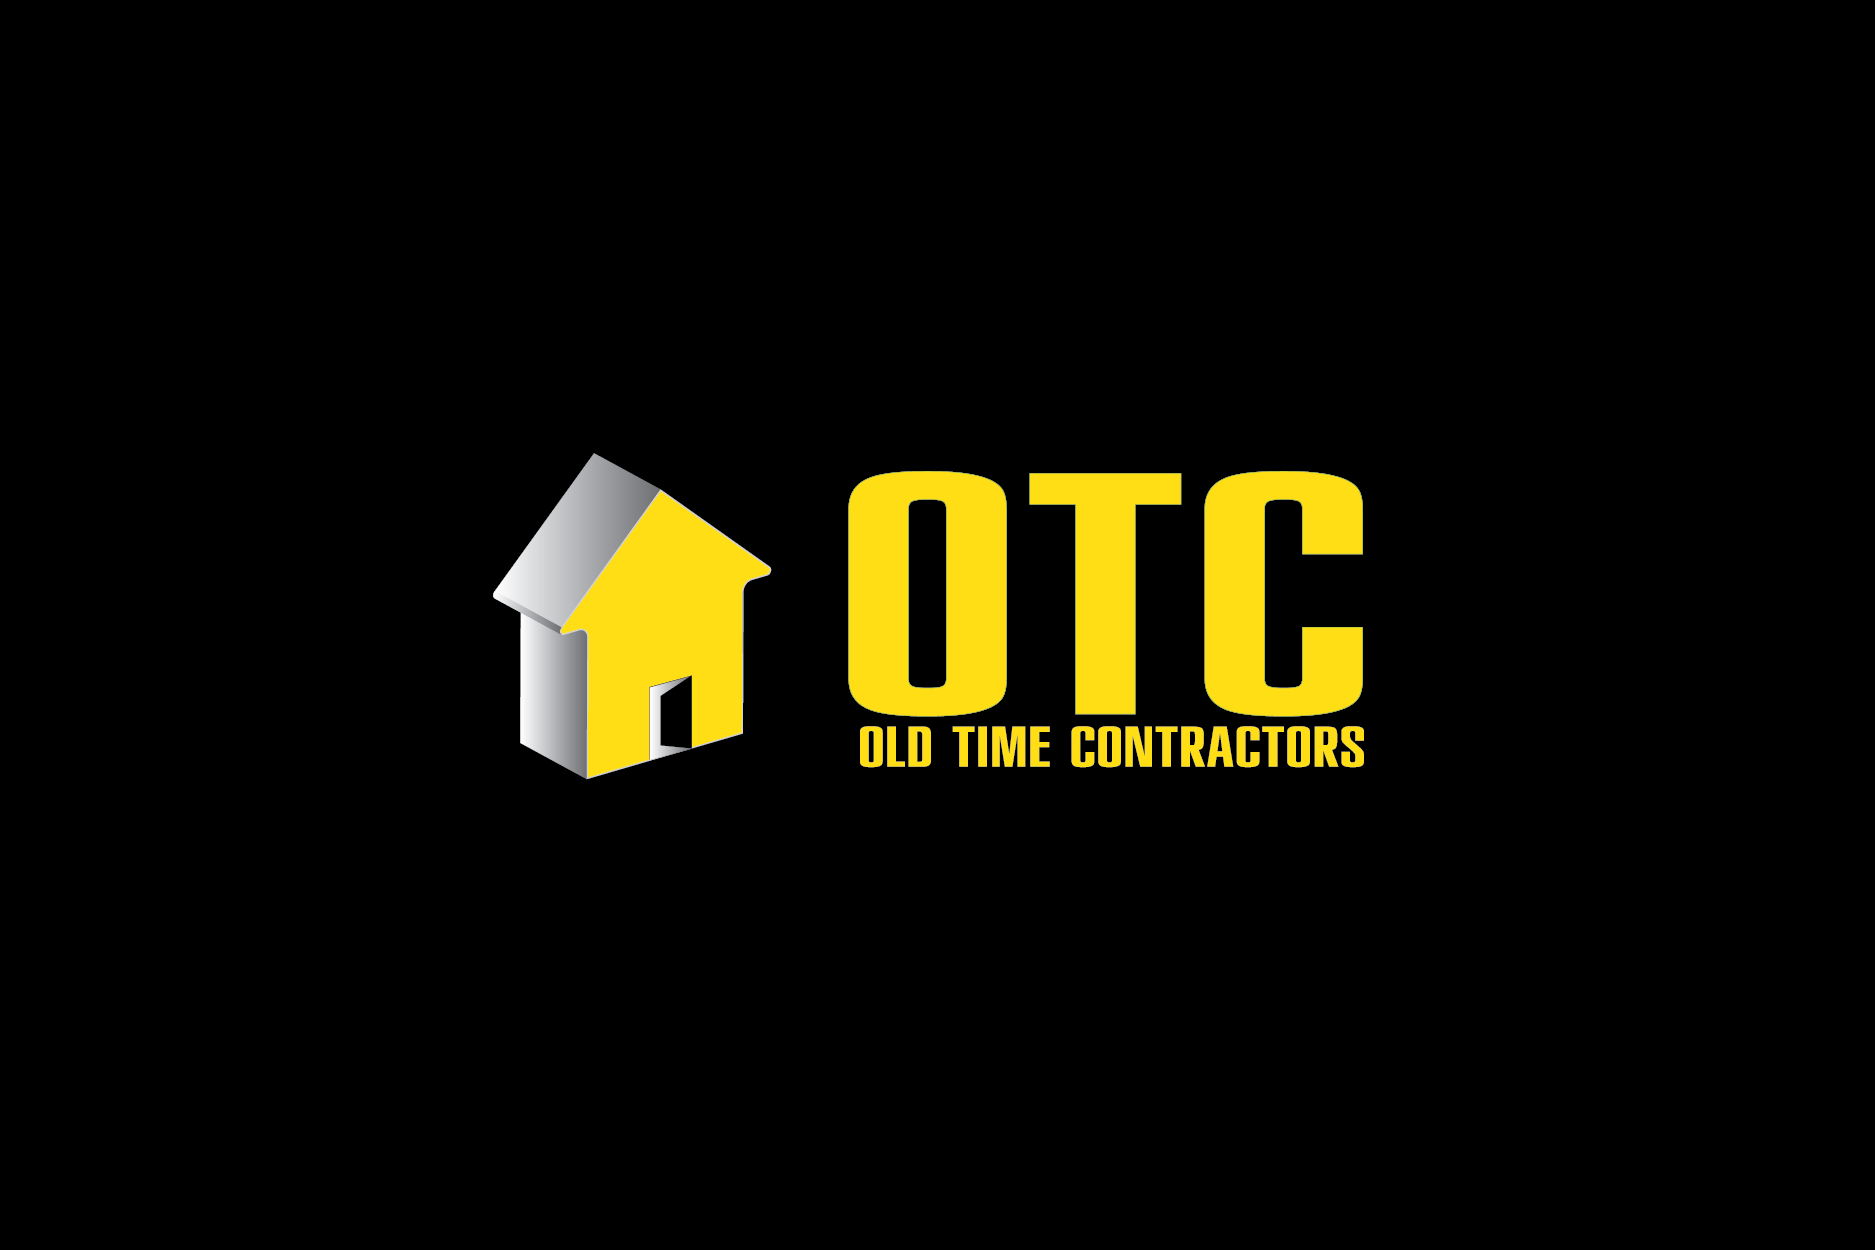 Logo Design by Moin Javed - Entry No. 96 in the Logo Design Contest Old Time Contractors, Inc. (new brand:  OTC, Inc.) Logo Design.